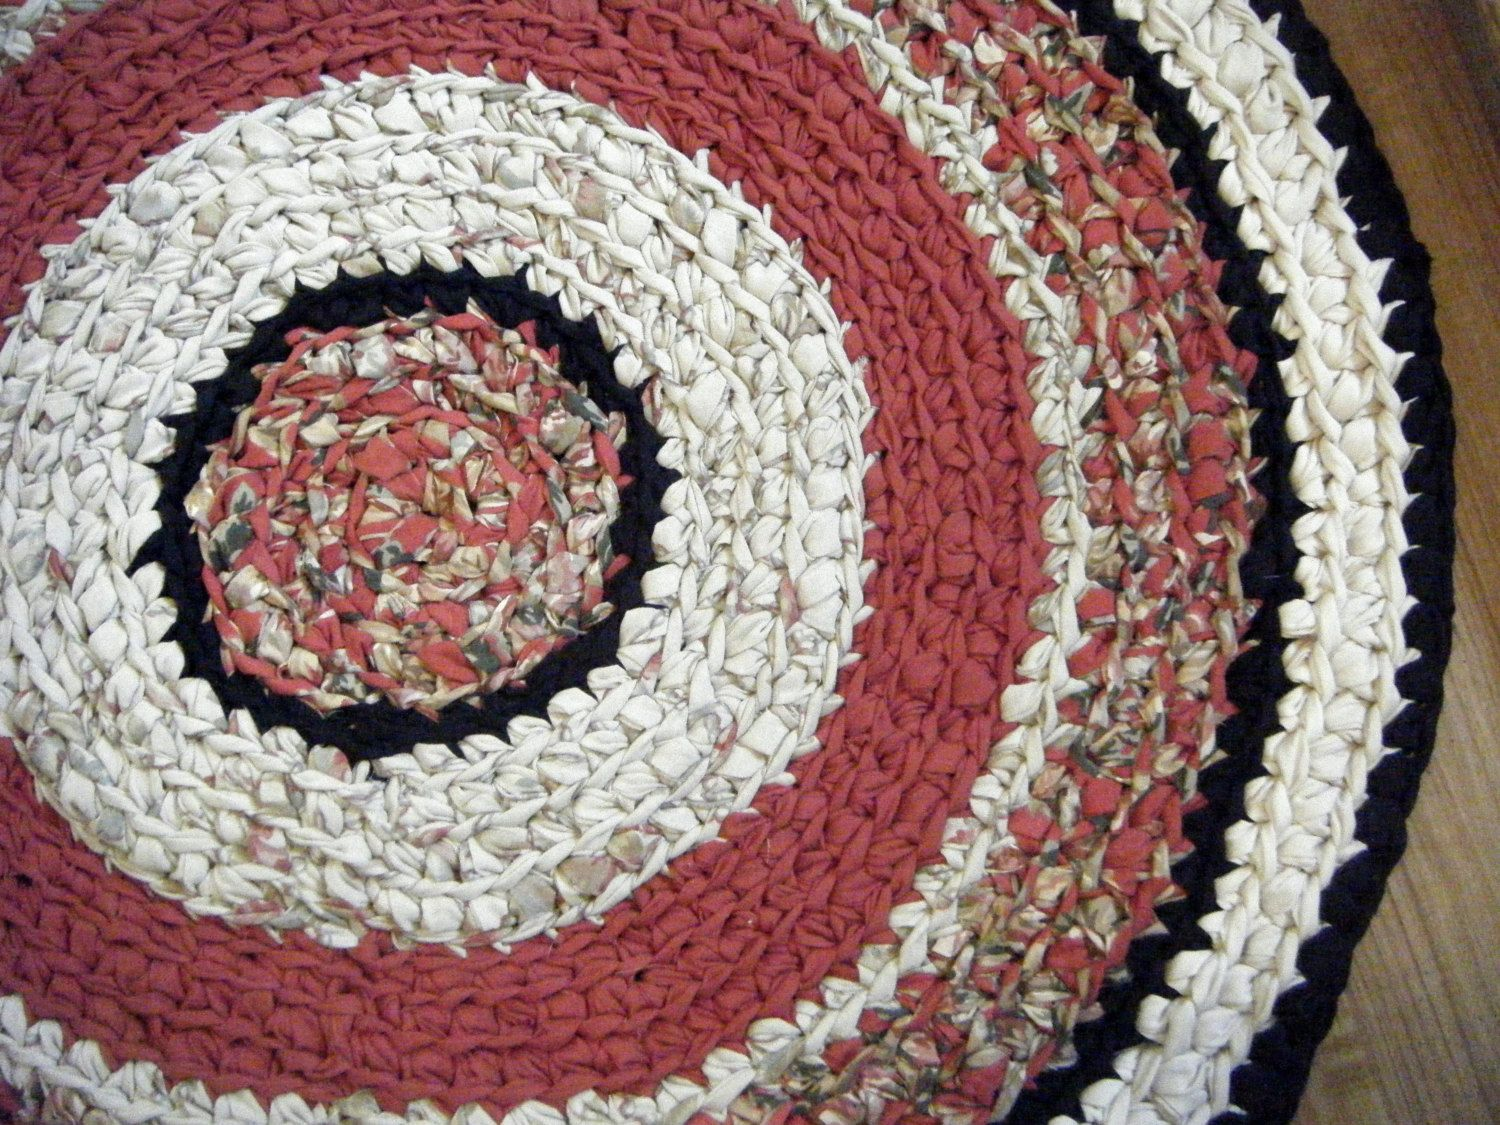 Red And Black 3 Foot Round Rug For Etsy Rugs Round Rugs Handmade Rugs